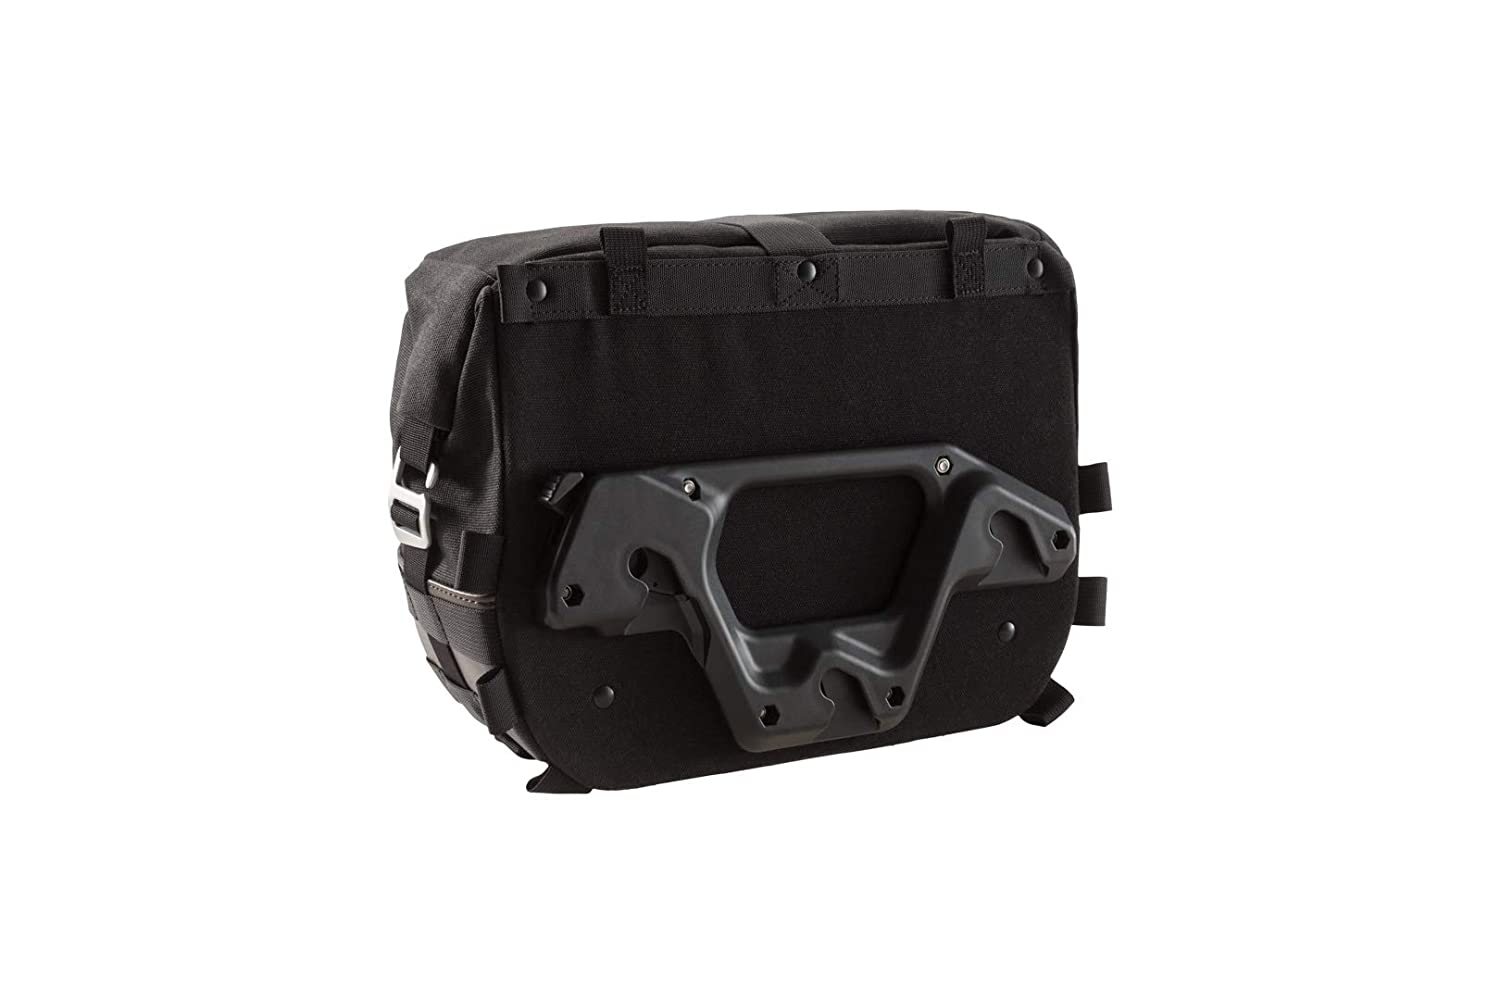 Taille Unique SW-MOTECH BC.HTA.00.401.10100L Legend Gear Side Bag LC1 Mix